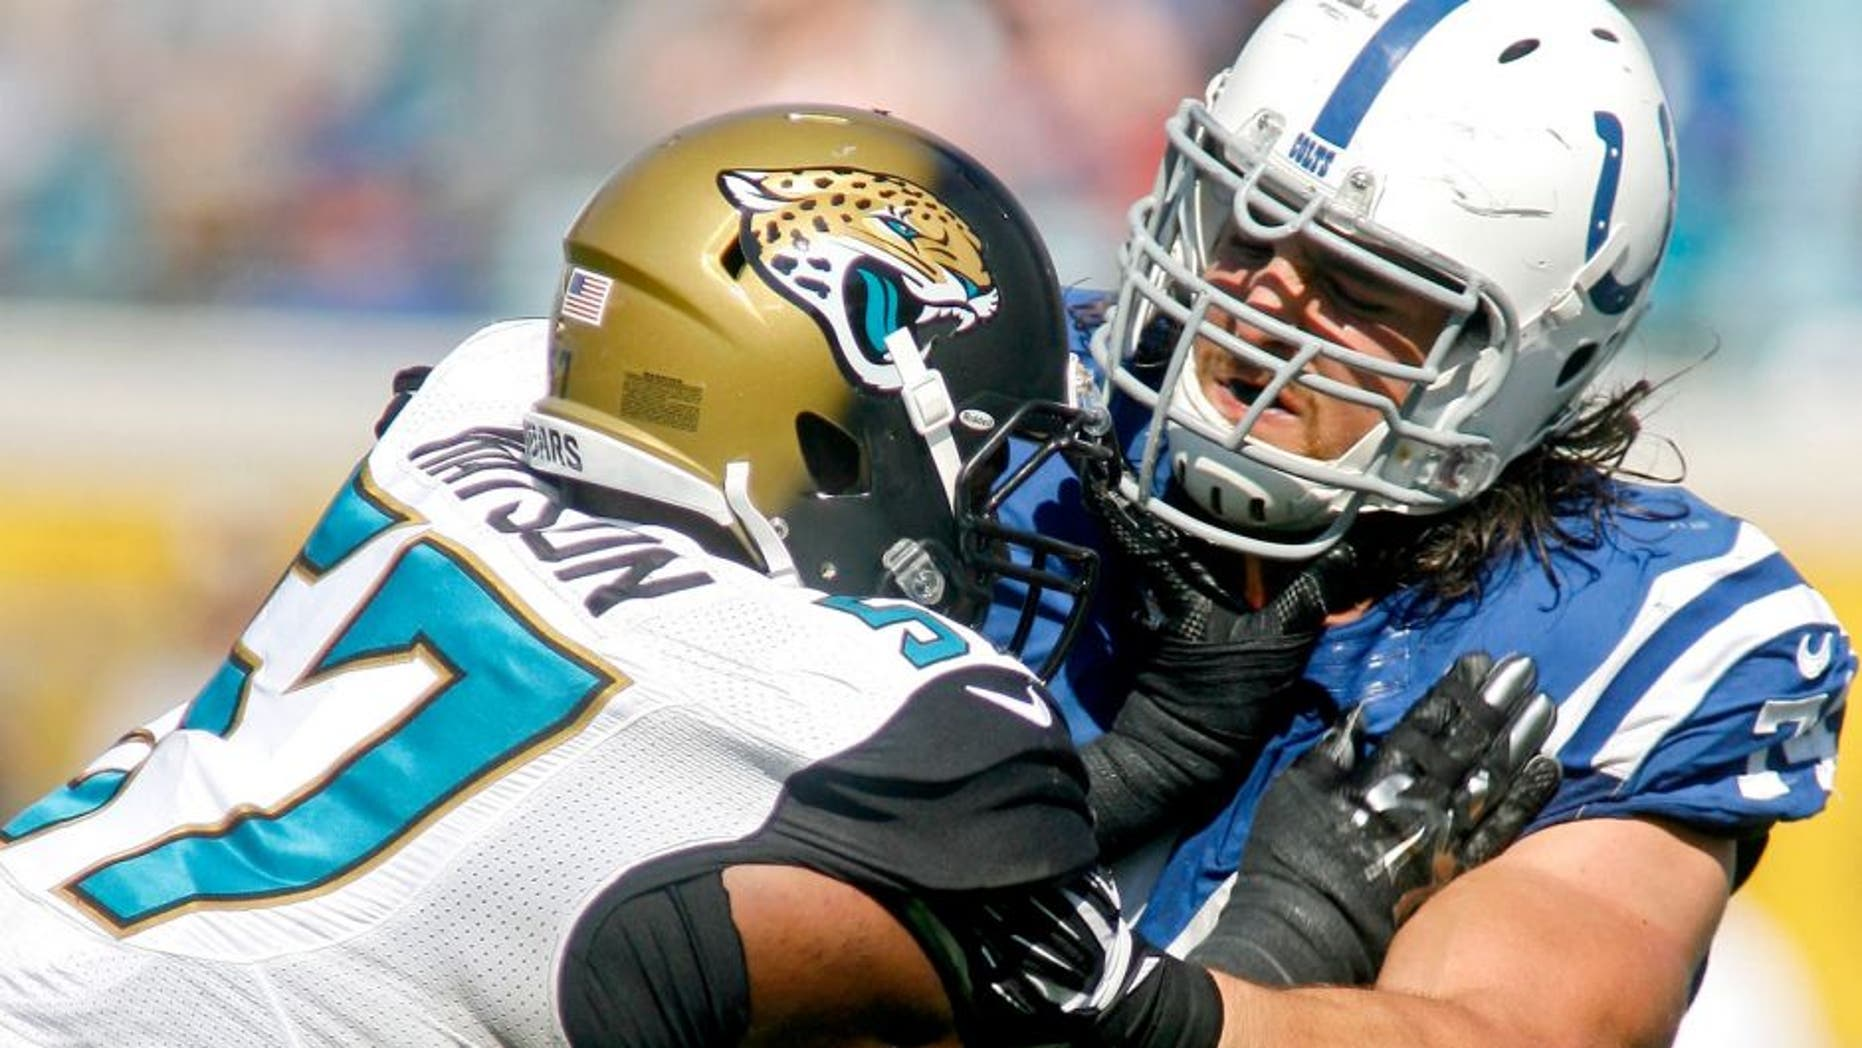 Sep 21, 2014; Jacksonville, FL, USA; Jacksonville Jaguars linebacker Dekoda Watson (57) is blocked by Indianapolis Colts tackle Anthony Castonzo (74) in the fourth quarter of their game at EverBank Field. The Colts won 44-17. Mandatory Credit: Phil Sears-USA TODAY Sports